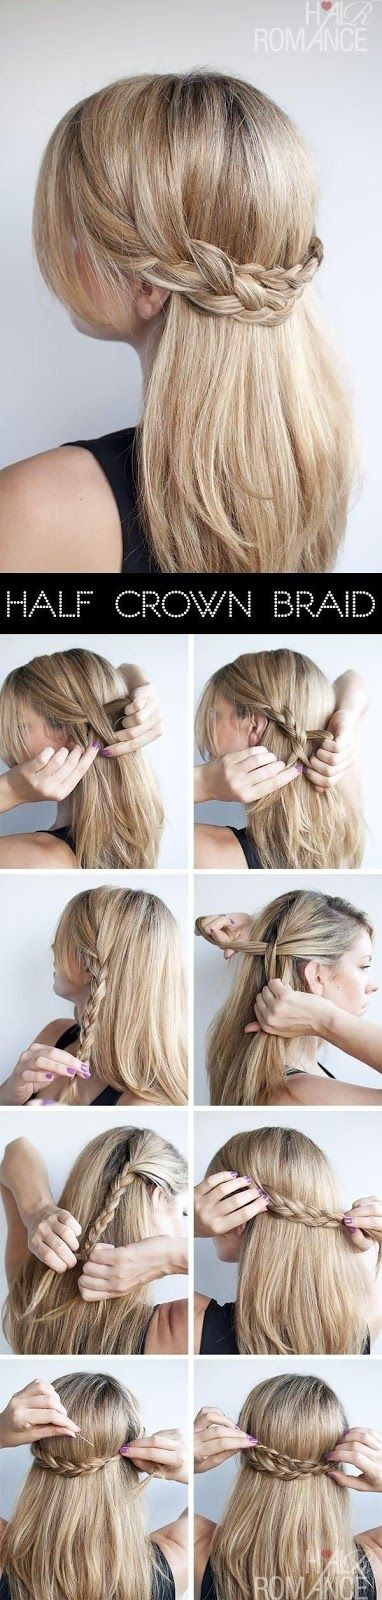 Learn easily half crown braid style .. click on picture to see more